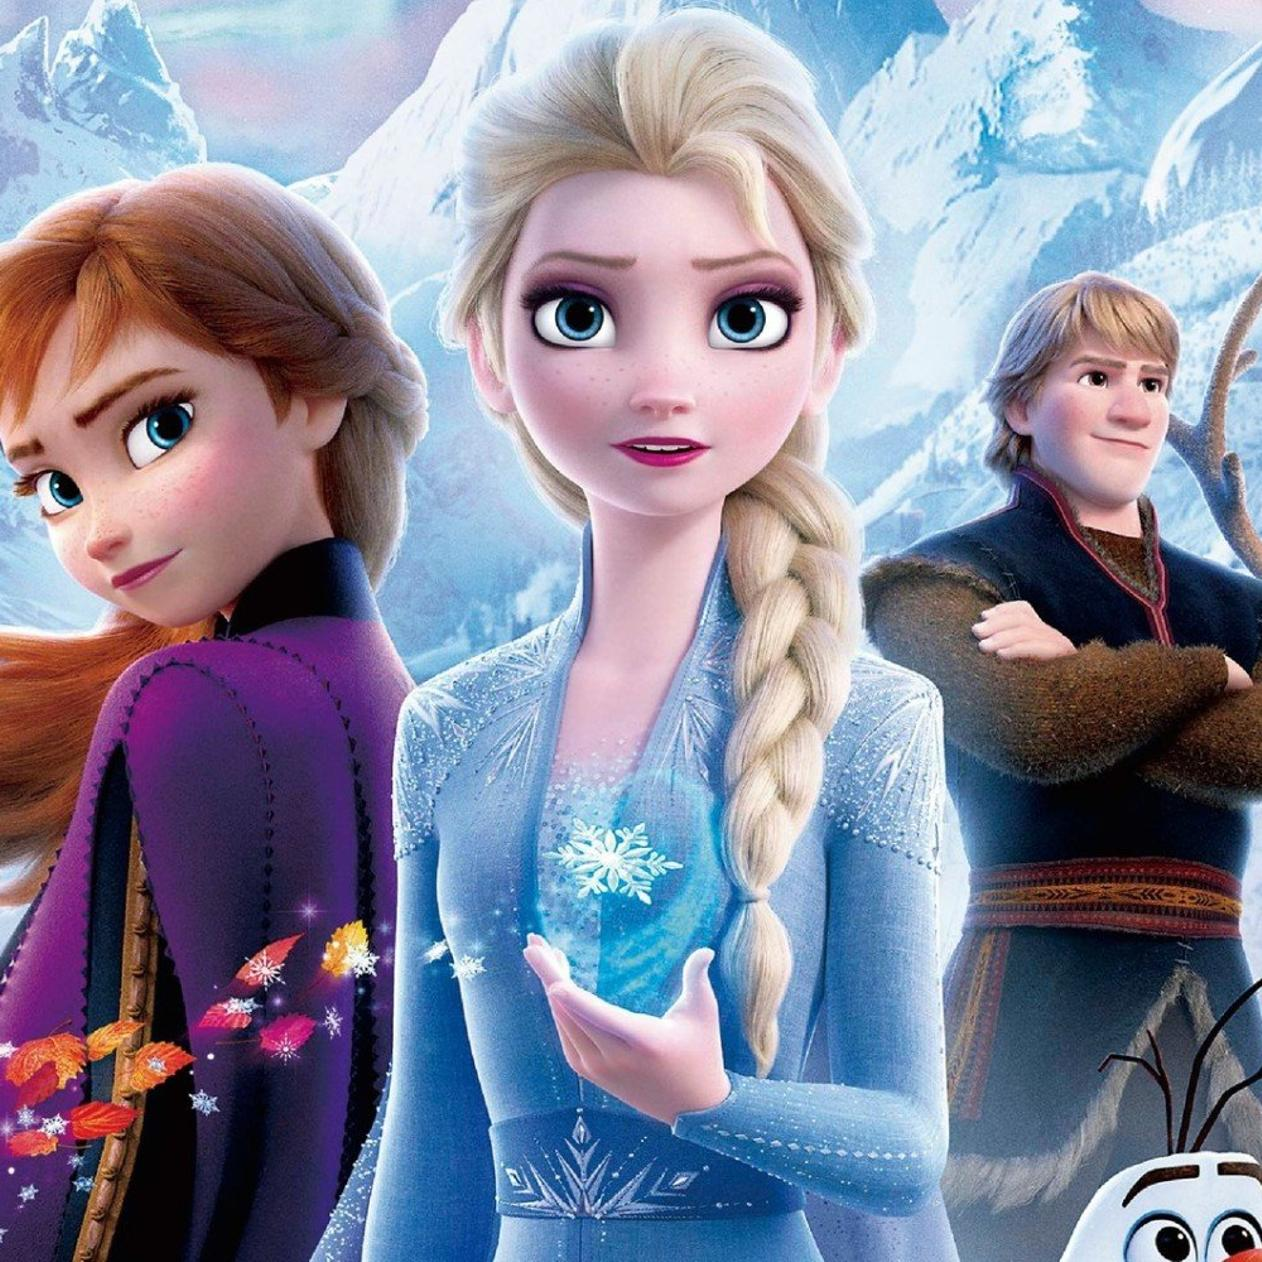 Frozen 2 The Movie Is Now On Cinema Ana Elsa And Olaf